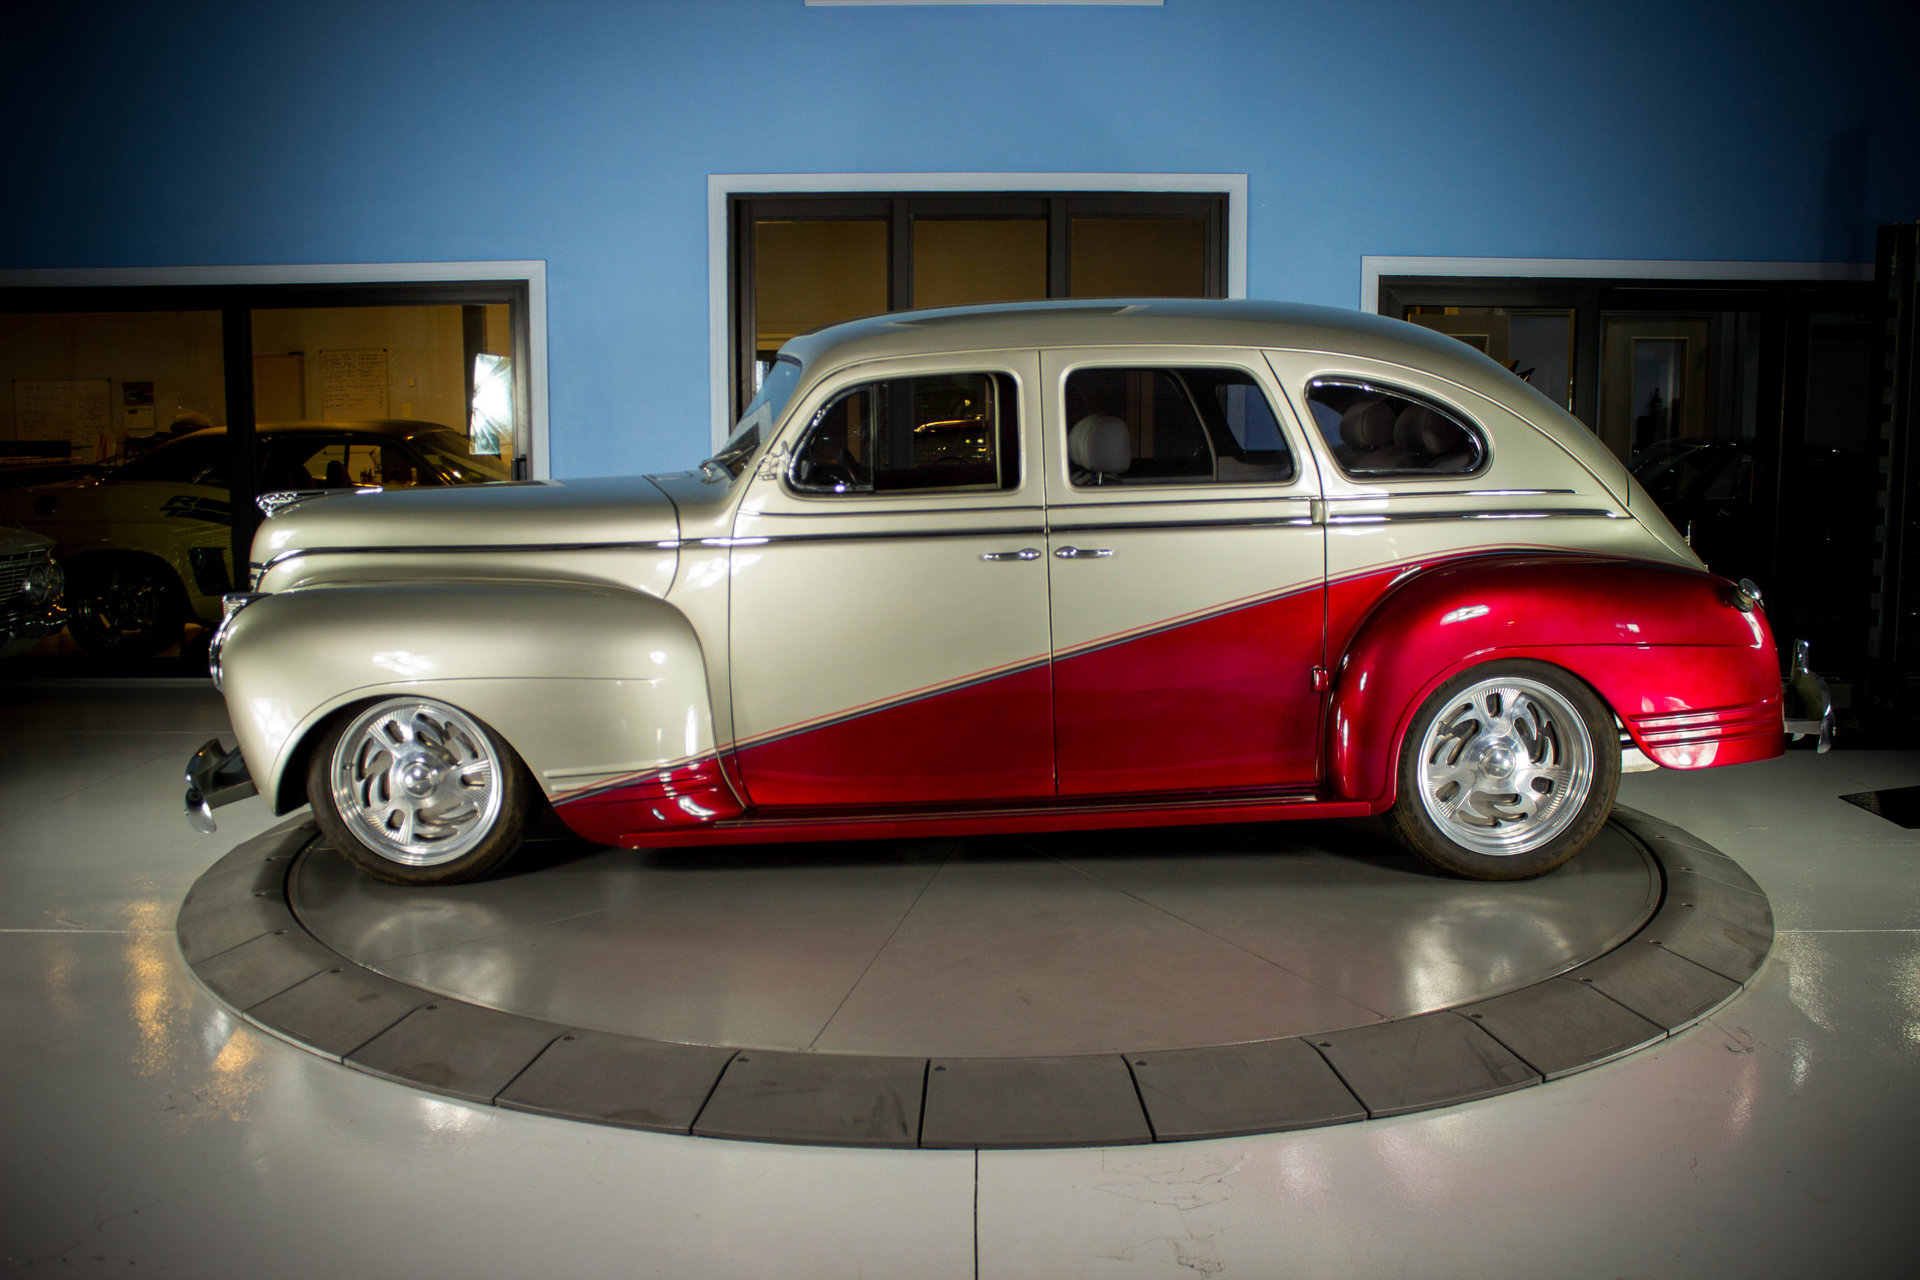 Used Cars Tampa Fl >> 1941 Plymouth P12 Special Deluxe | Classic Cars & Used ...